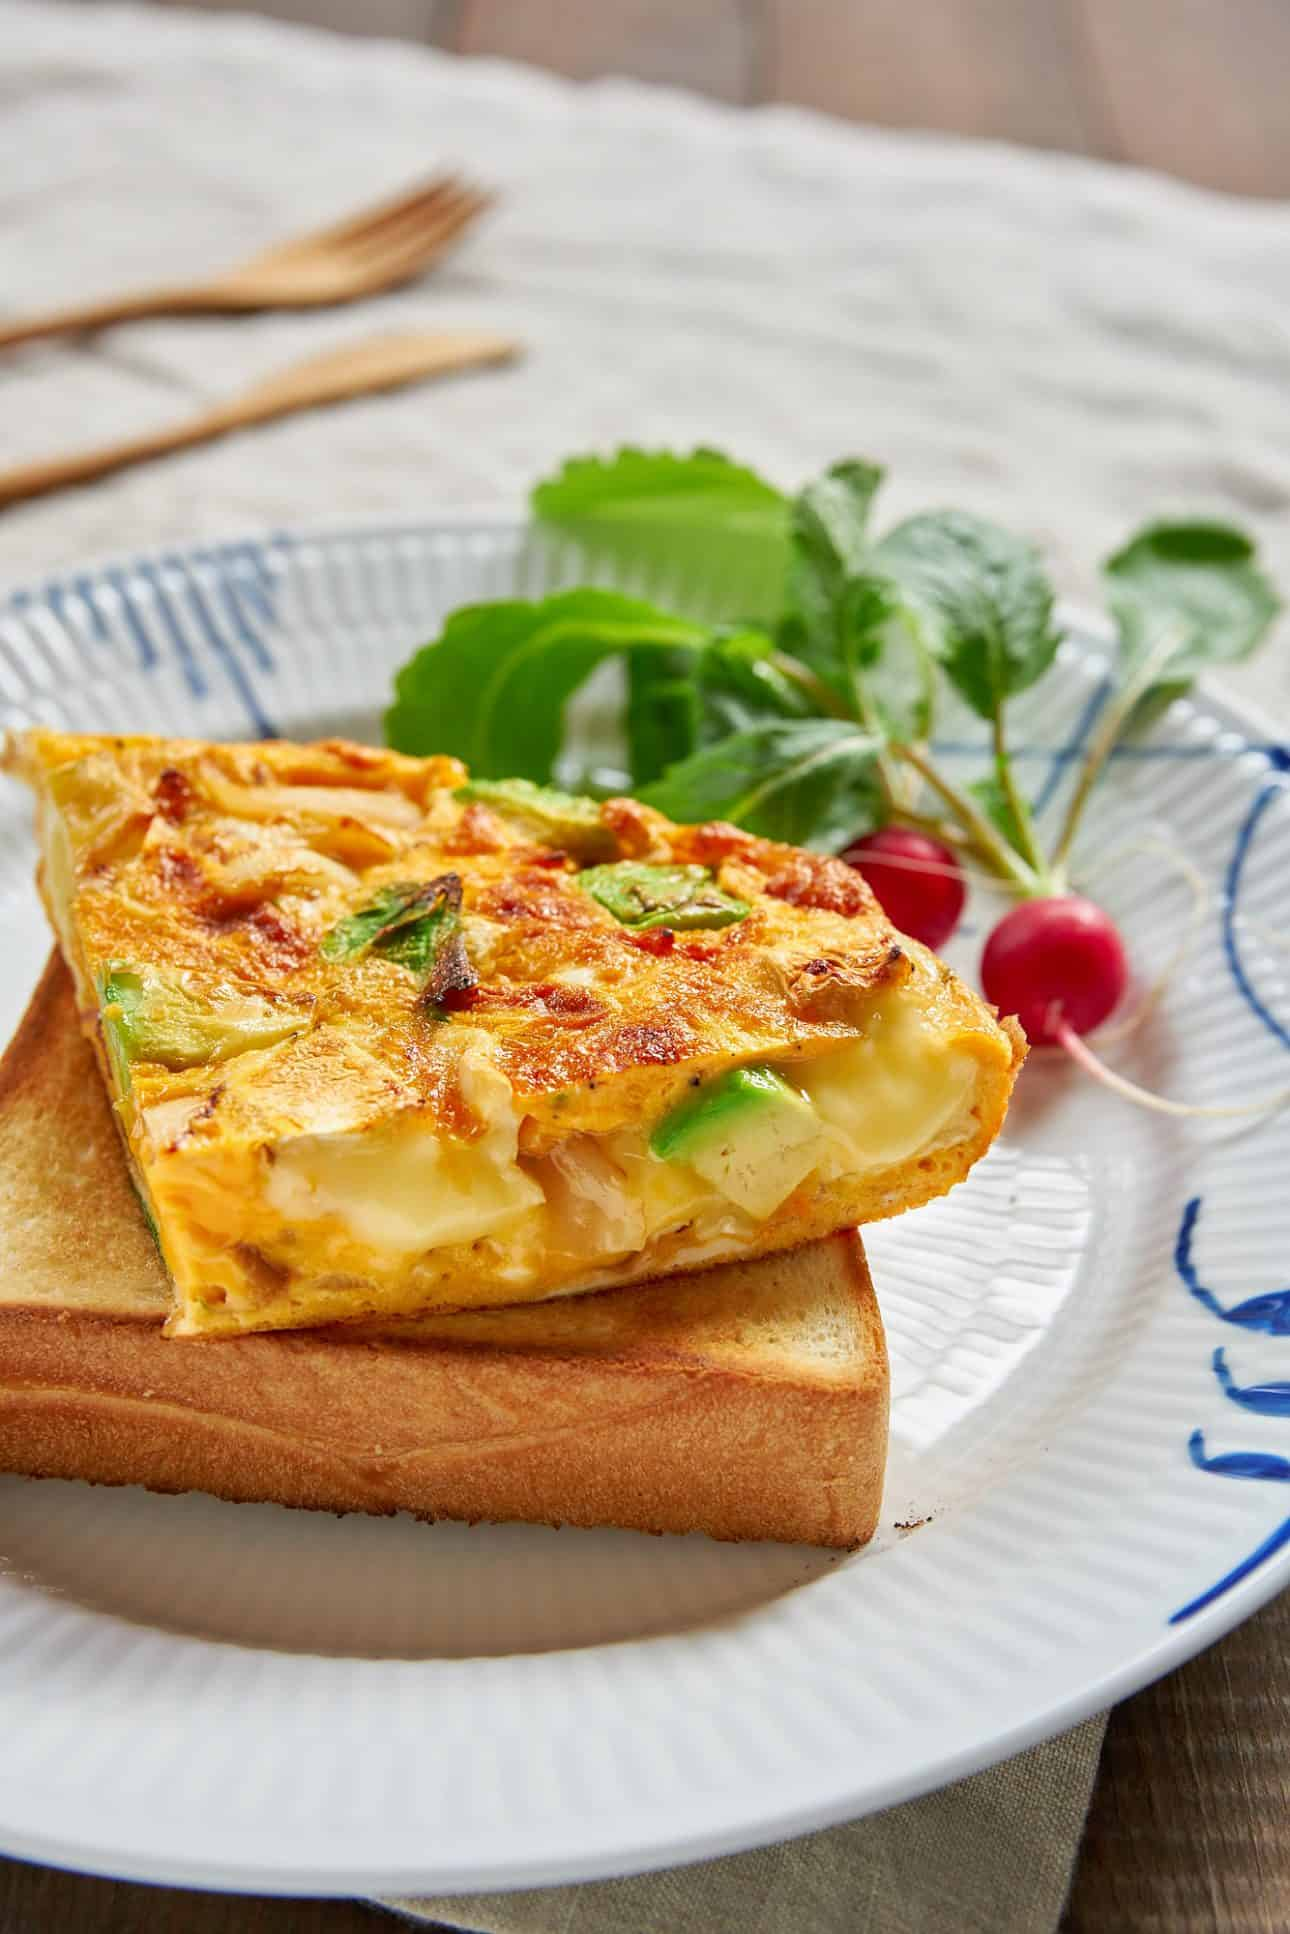 Pools of molten camembert cheese make this 15 minute avocado and caramelized onion frittata ridiculously good.